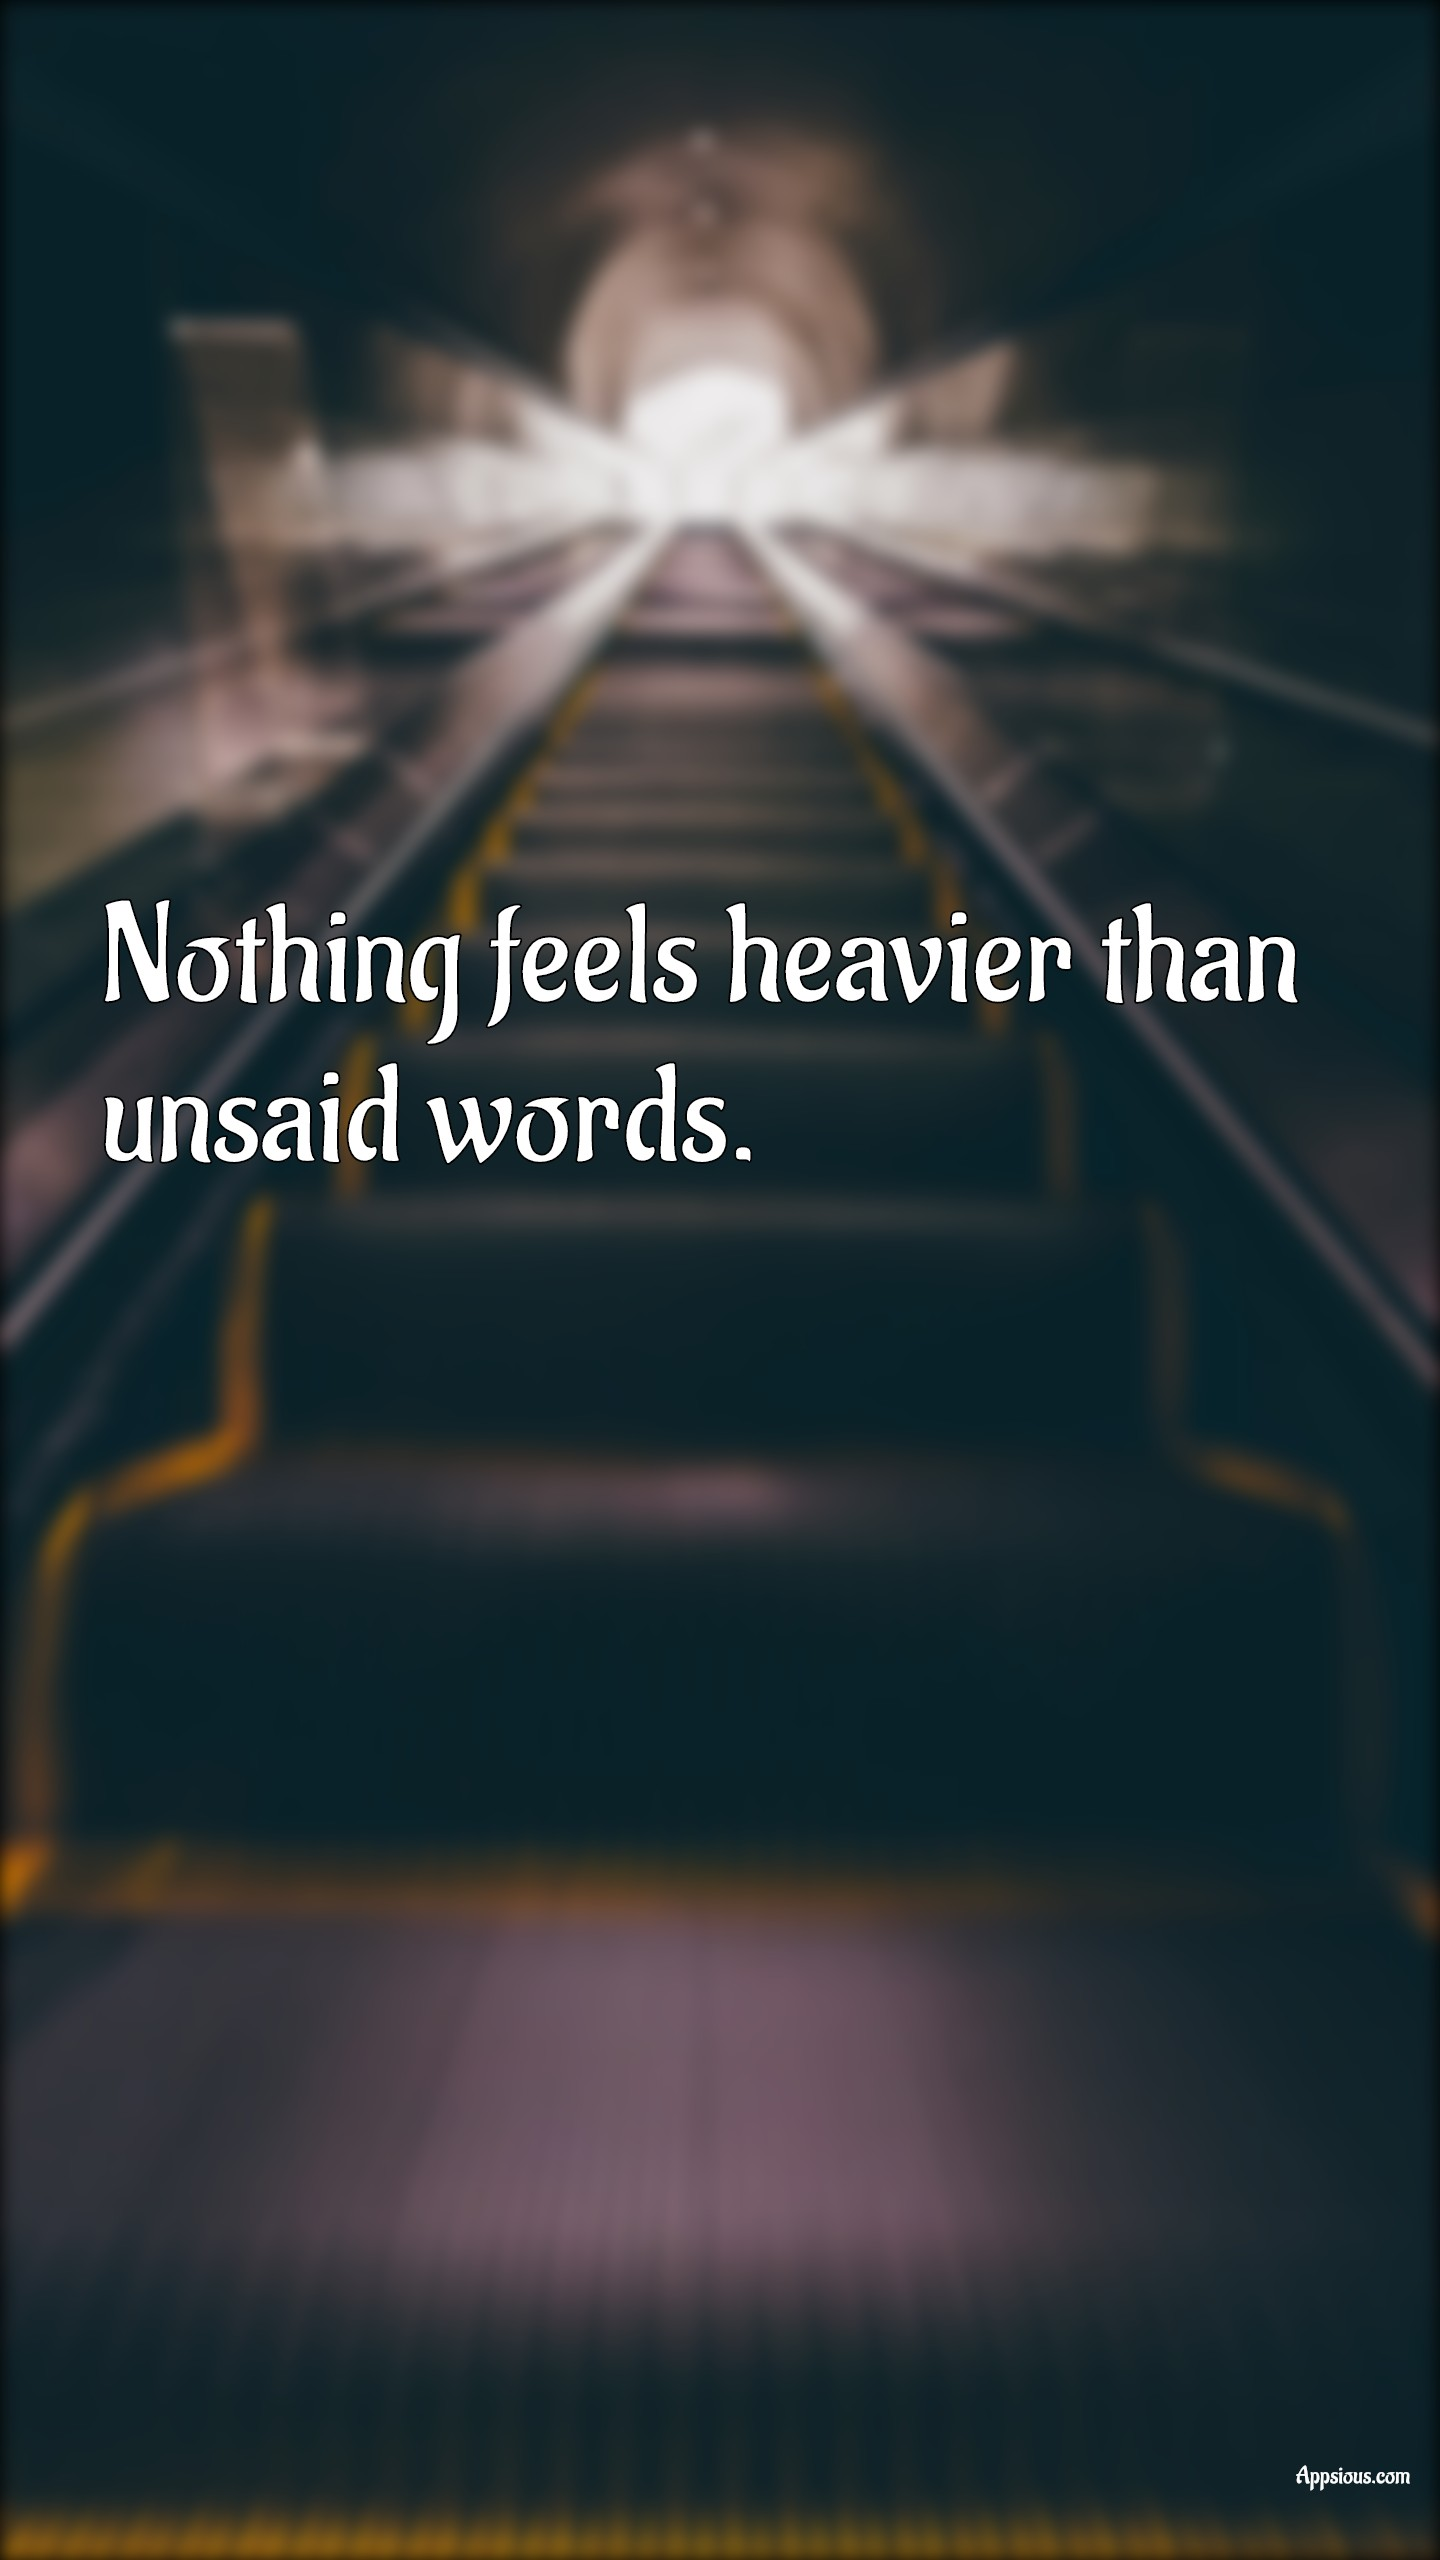 Nothing feels heavier than unsaid words.